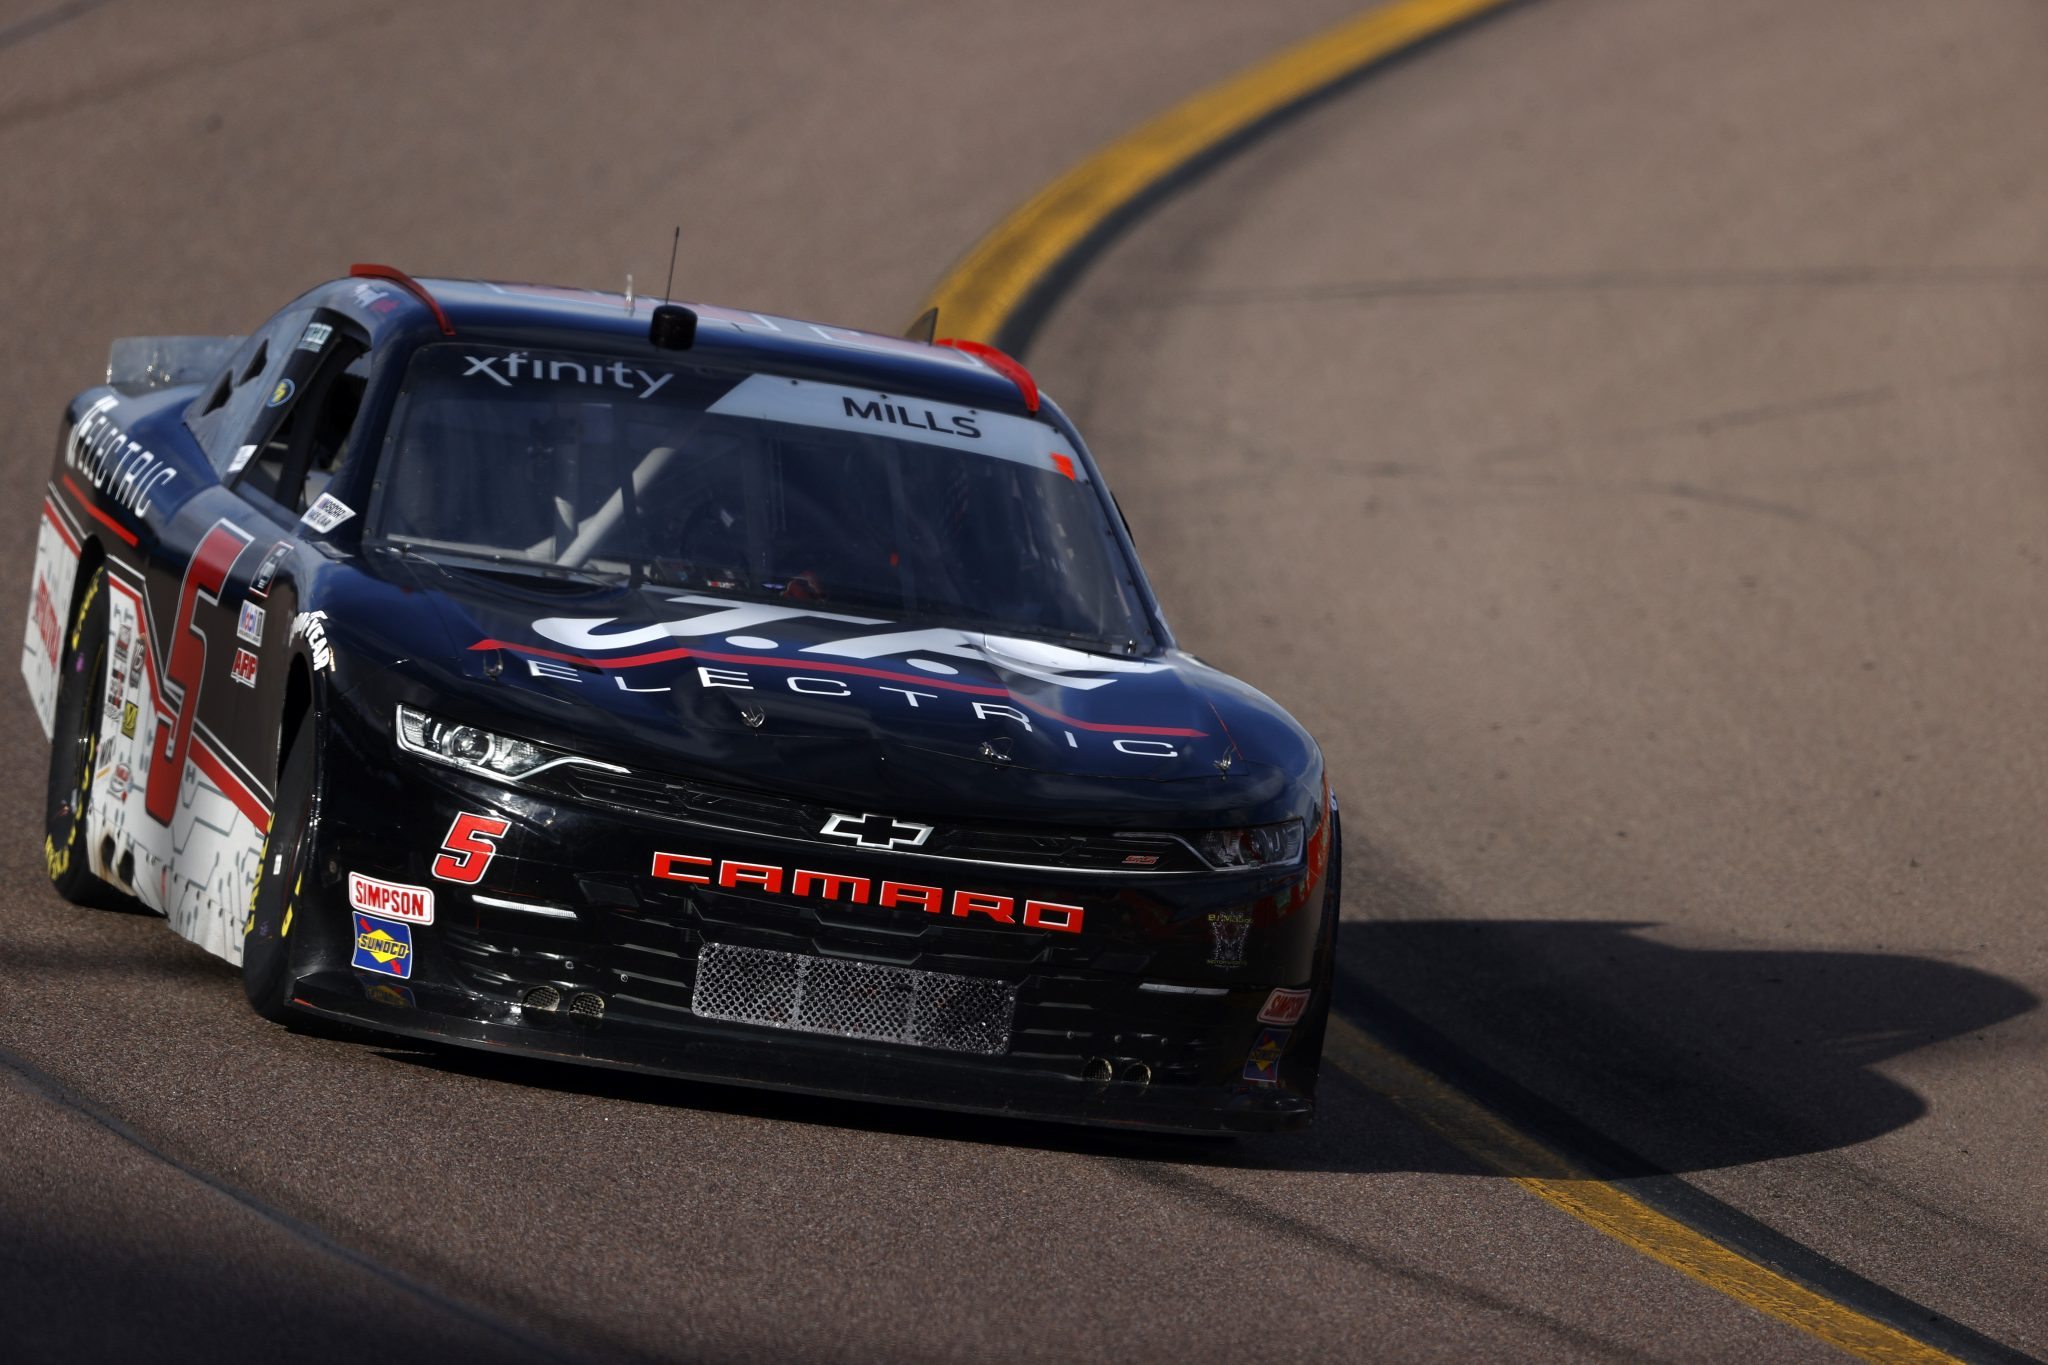 AVONDALE, ARIZONA - MARCH 13: Matt Mills, driver of the #5 J.F. Electric Chevrolet, drives during the NASCAR Xfinity Series Call 811 Before You Dig 200 presented by Arizona 811 at Phoenix Raceway on March 13, 2021 in Avondale, Arizona. (Photo by Christian Petersen/Getty Images) | Getty Images